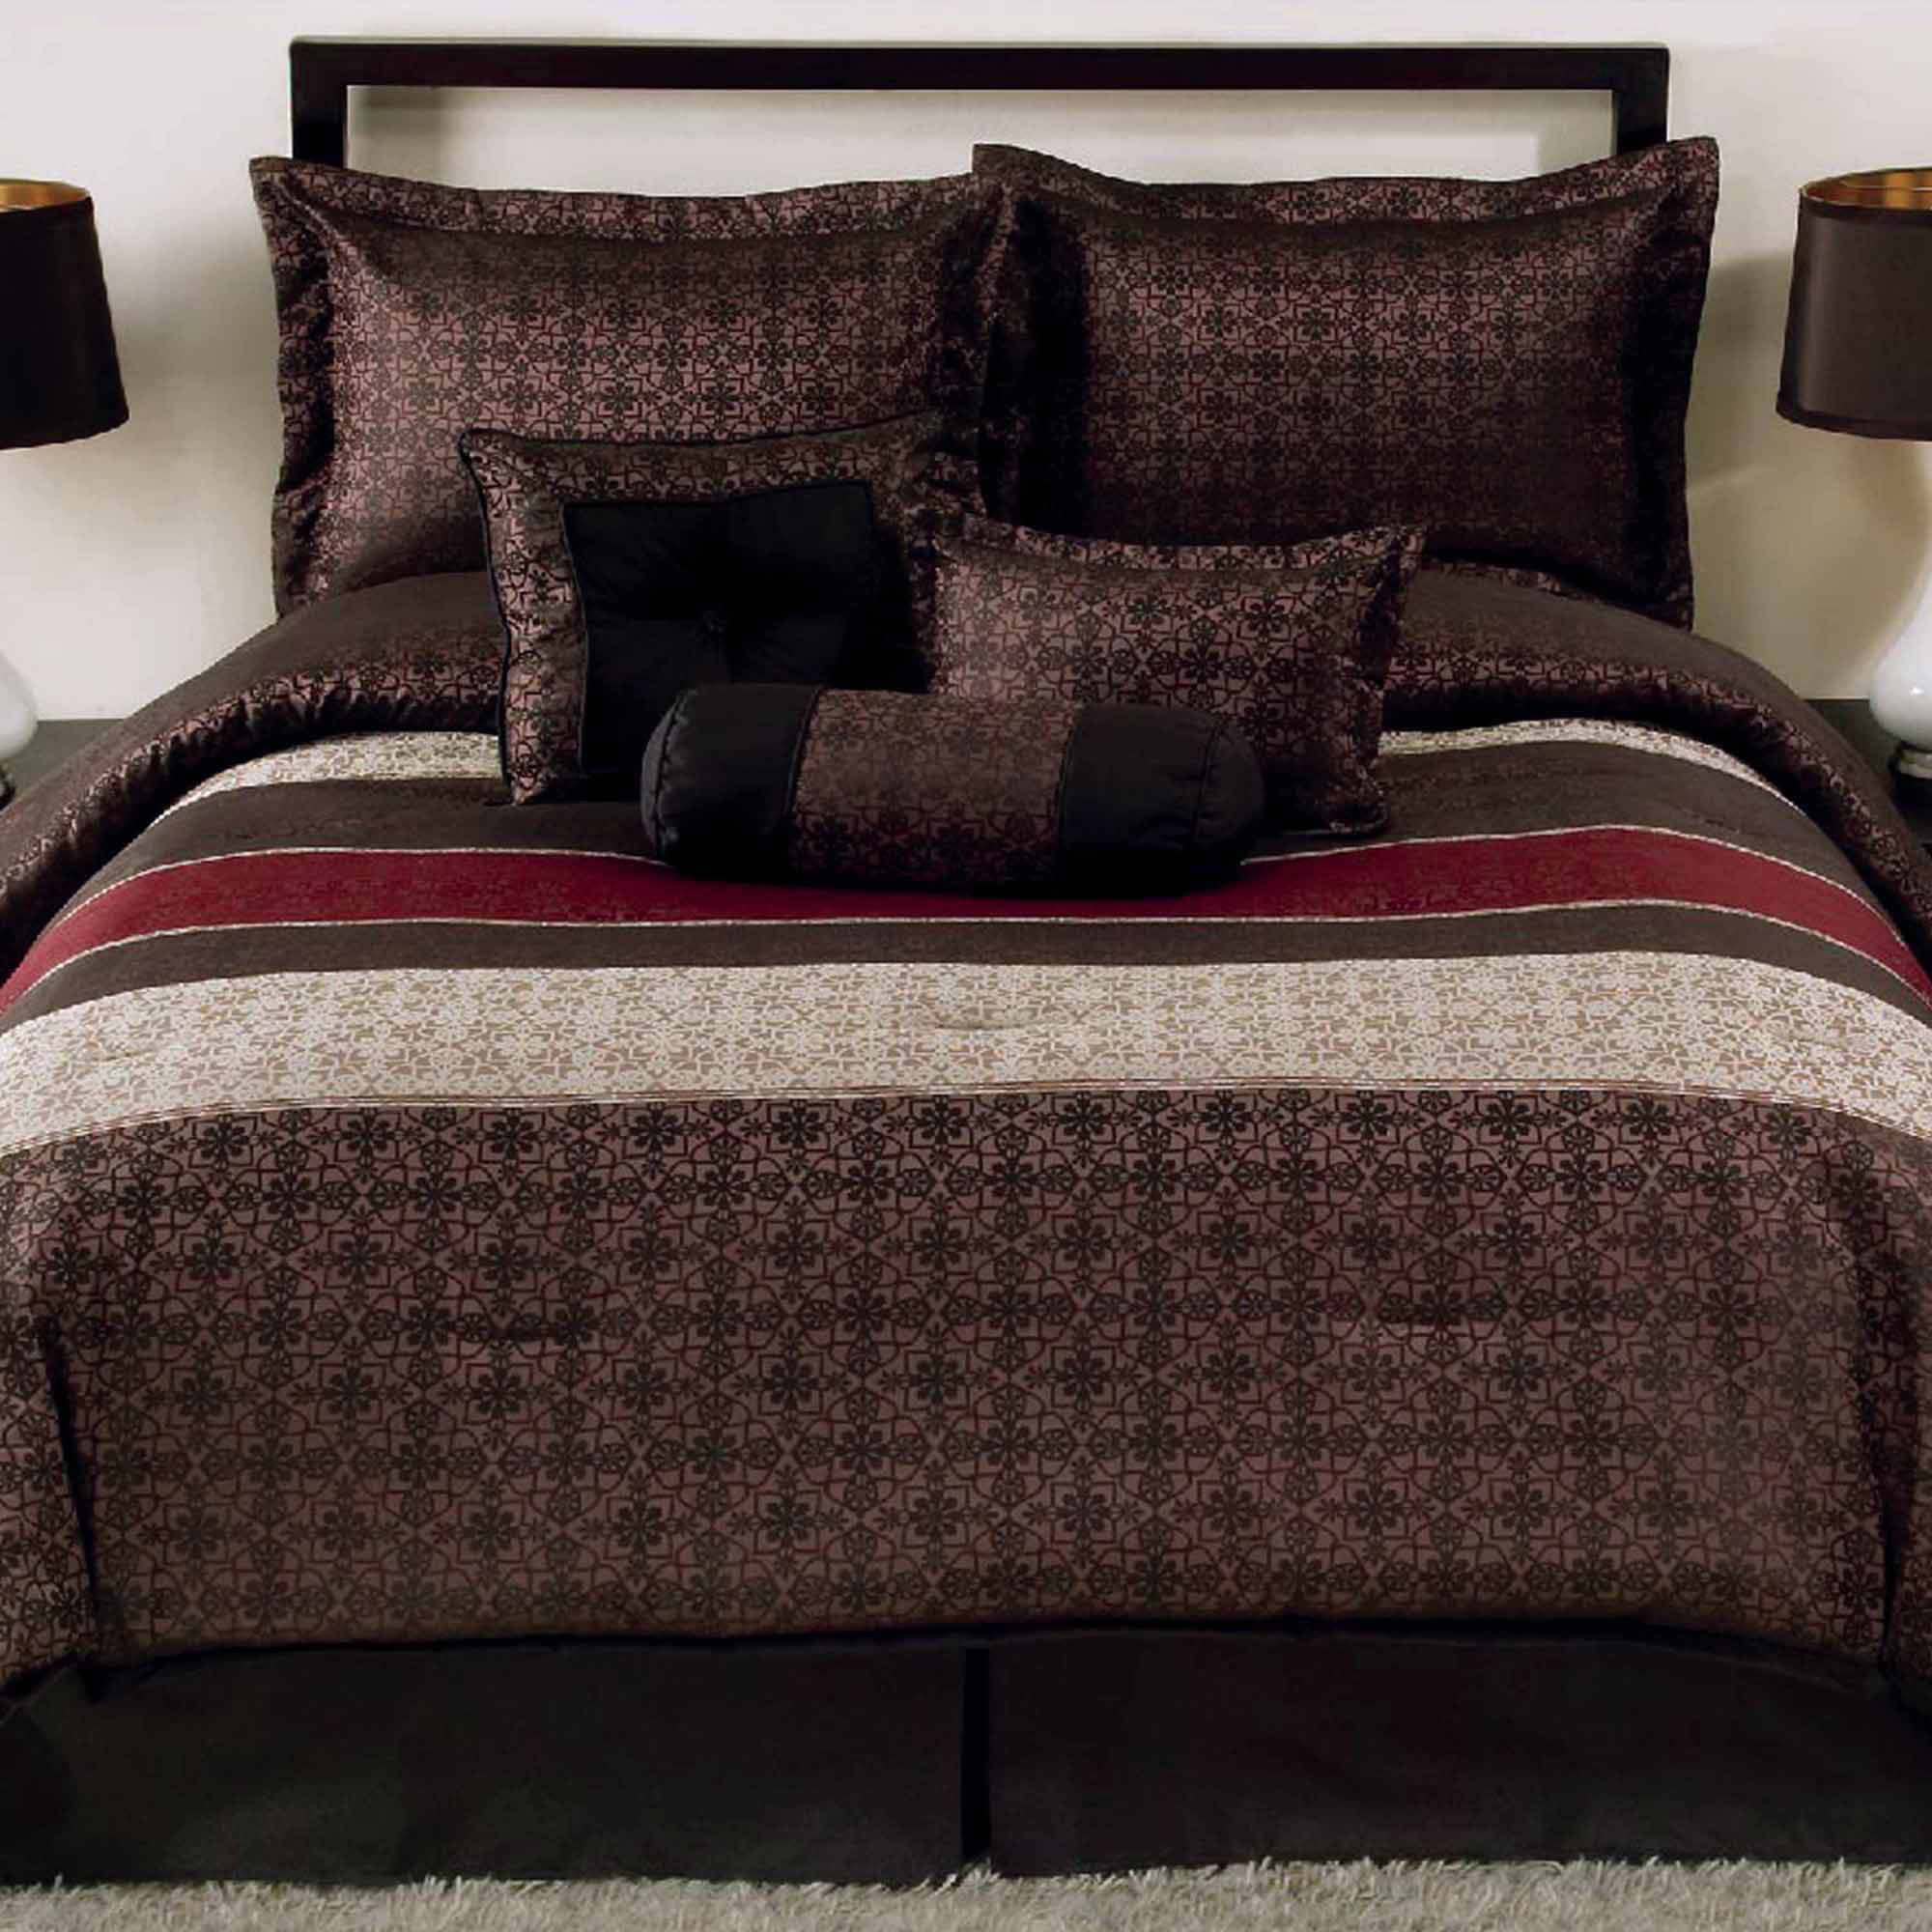 Mainstays Full or Queen Medici Comforter Set, 7 Piece